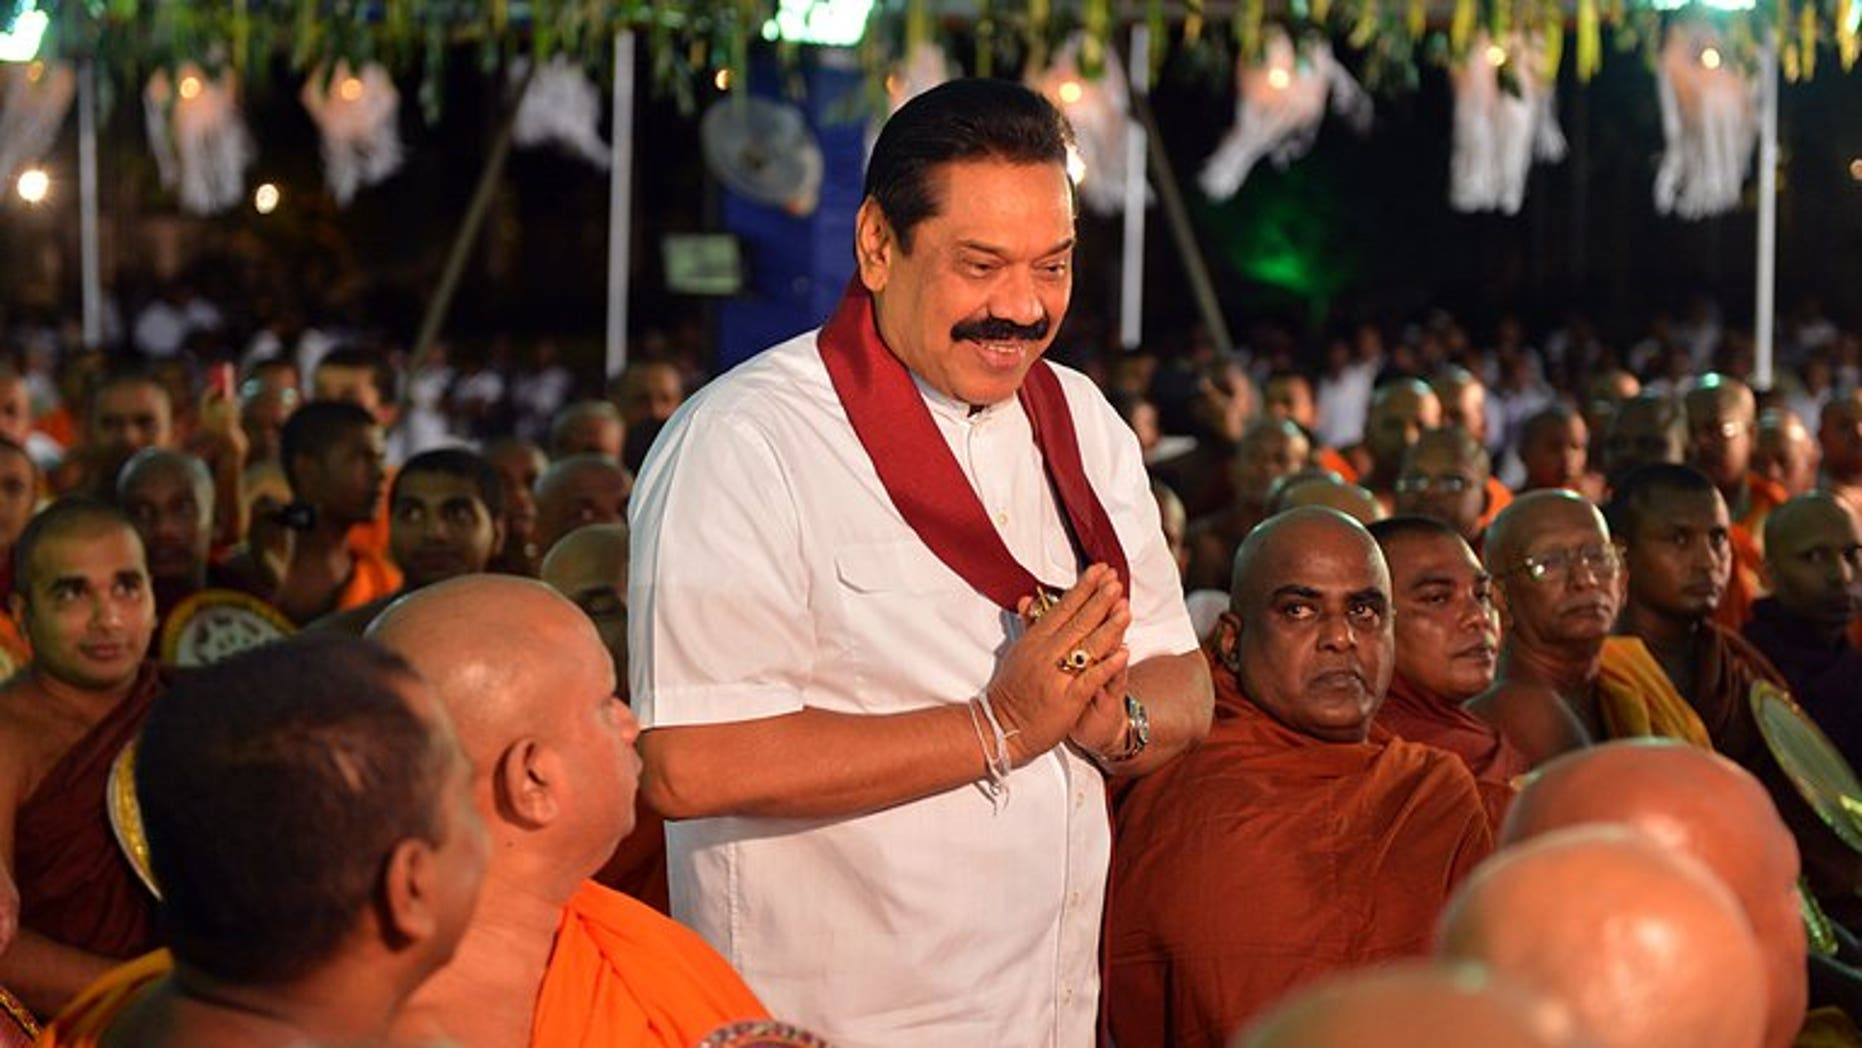 Sri Lankan President Mahinda Rajapakse (C) walks past Buddhist monks during the War Heroes religious ceremony in Colombo on May 9, 2013. Rajapakse ordered a new investigation into the disappearance of thousands of people in the island's northeast during an ethnic war which ended four years ago.